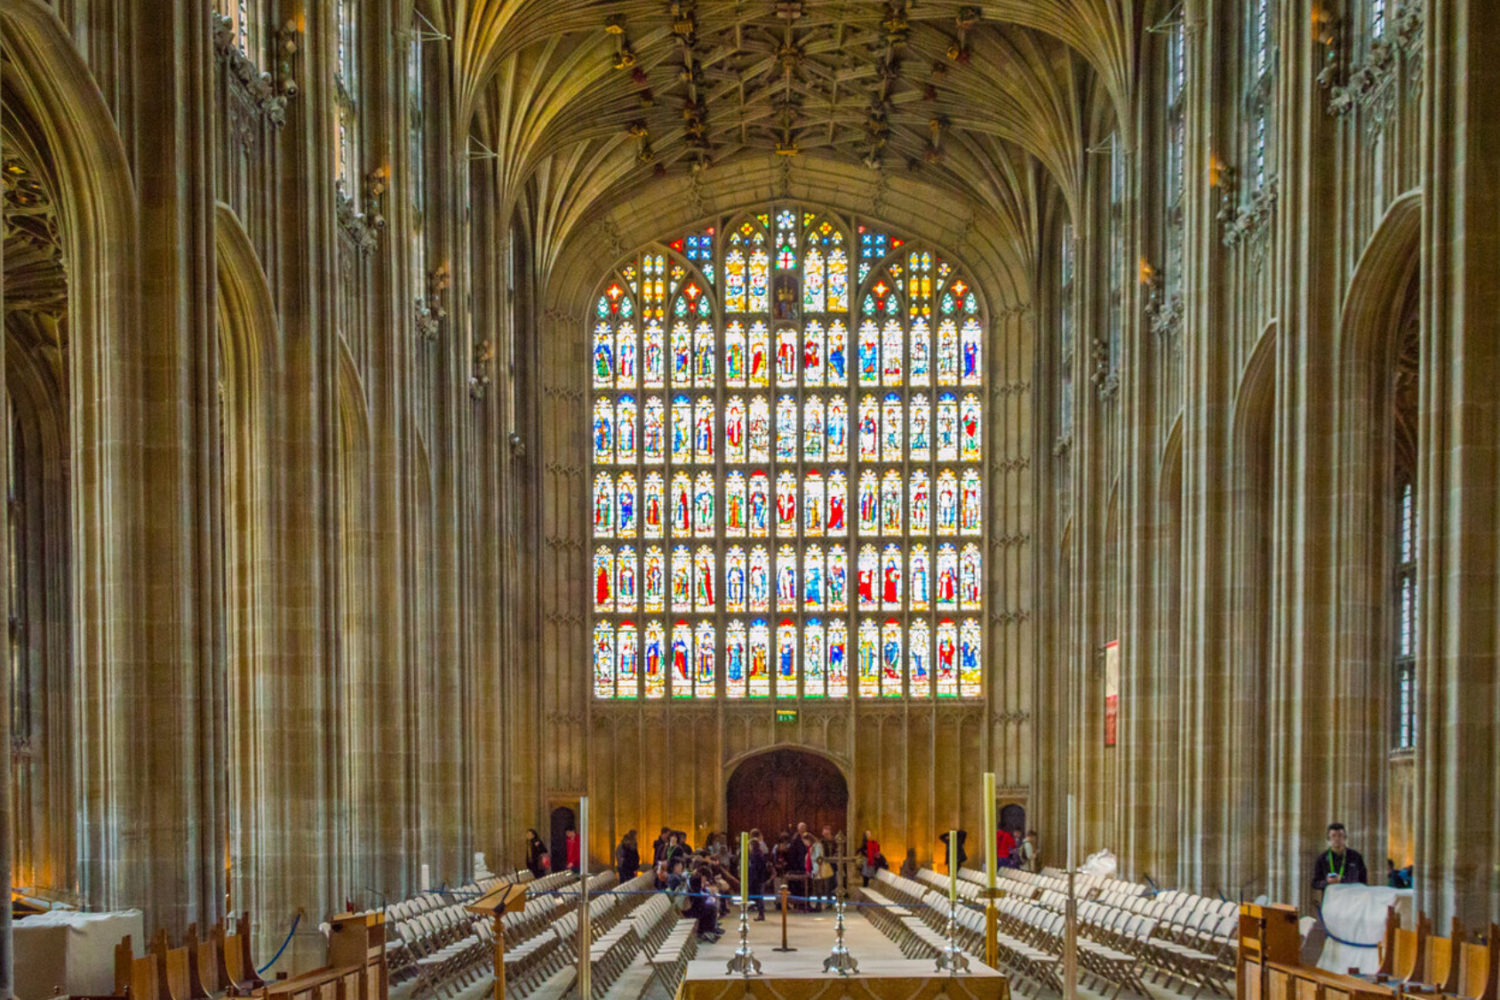 st georges chapel windsor private tour guide